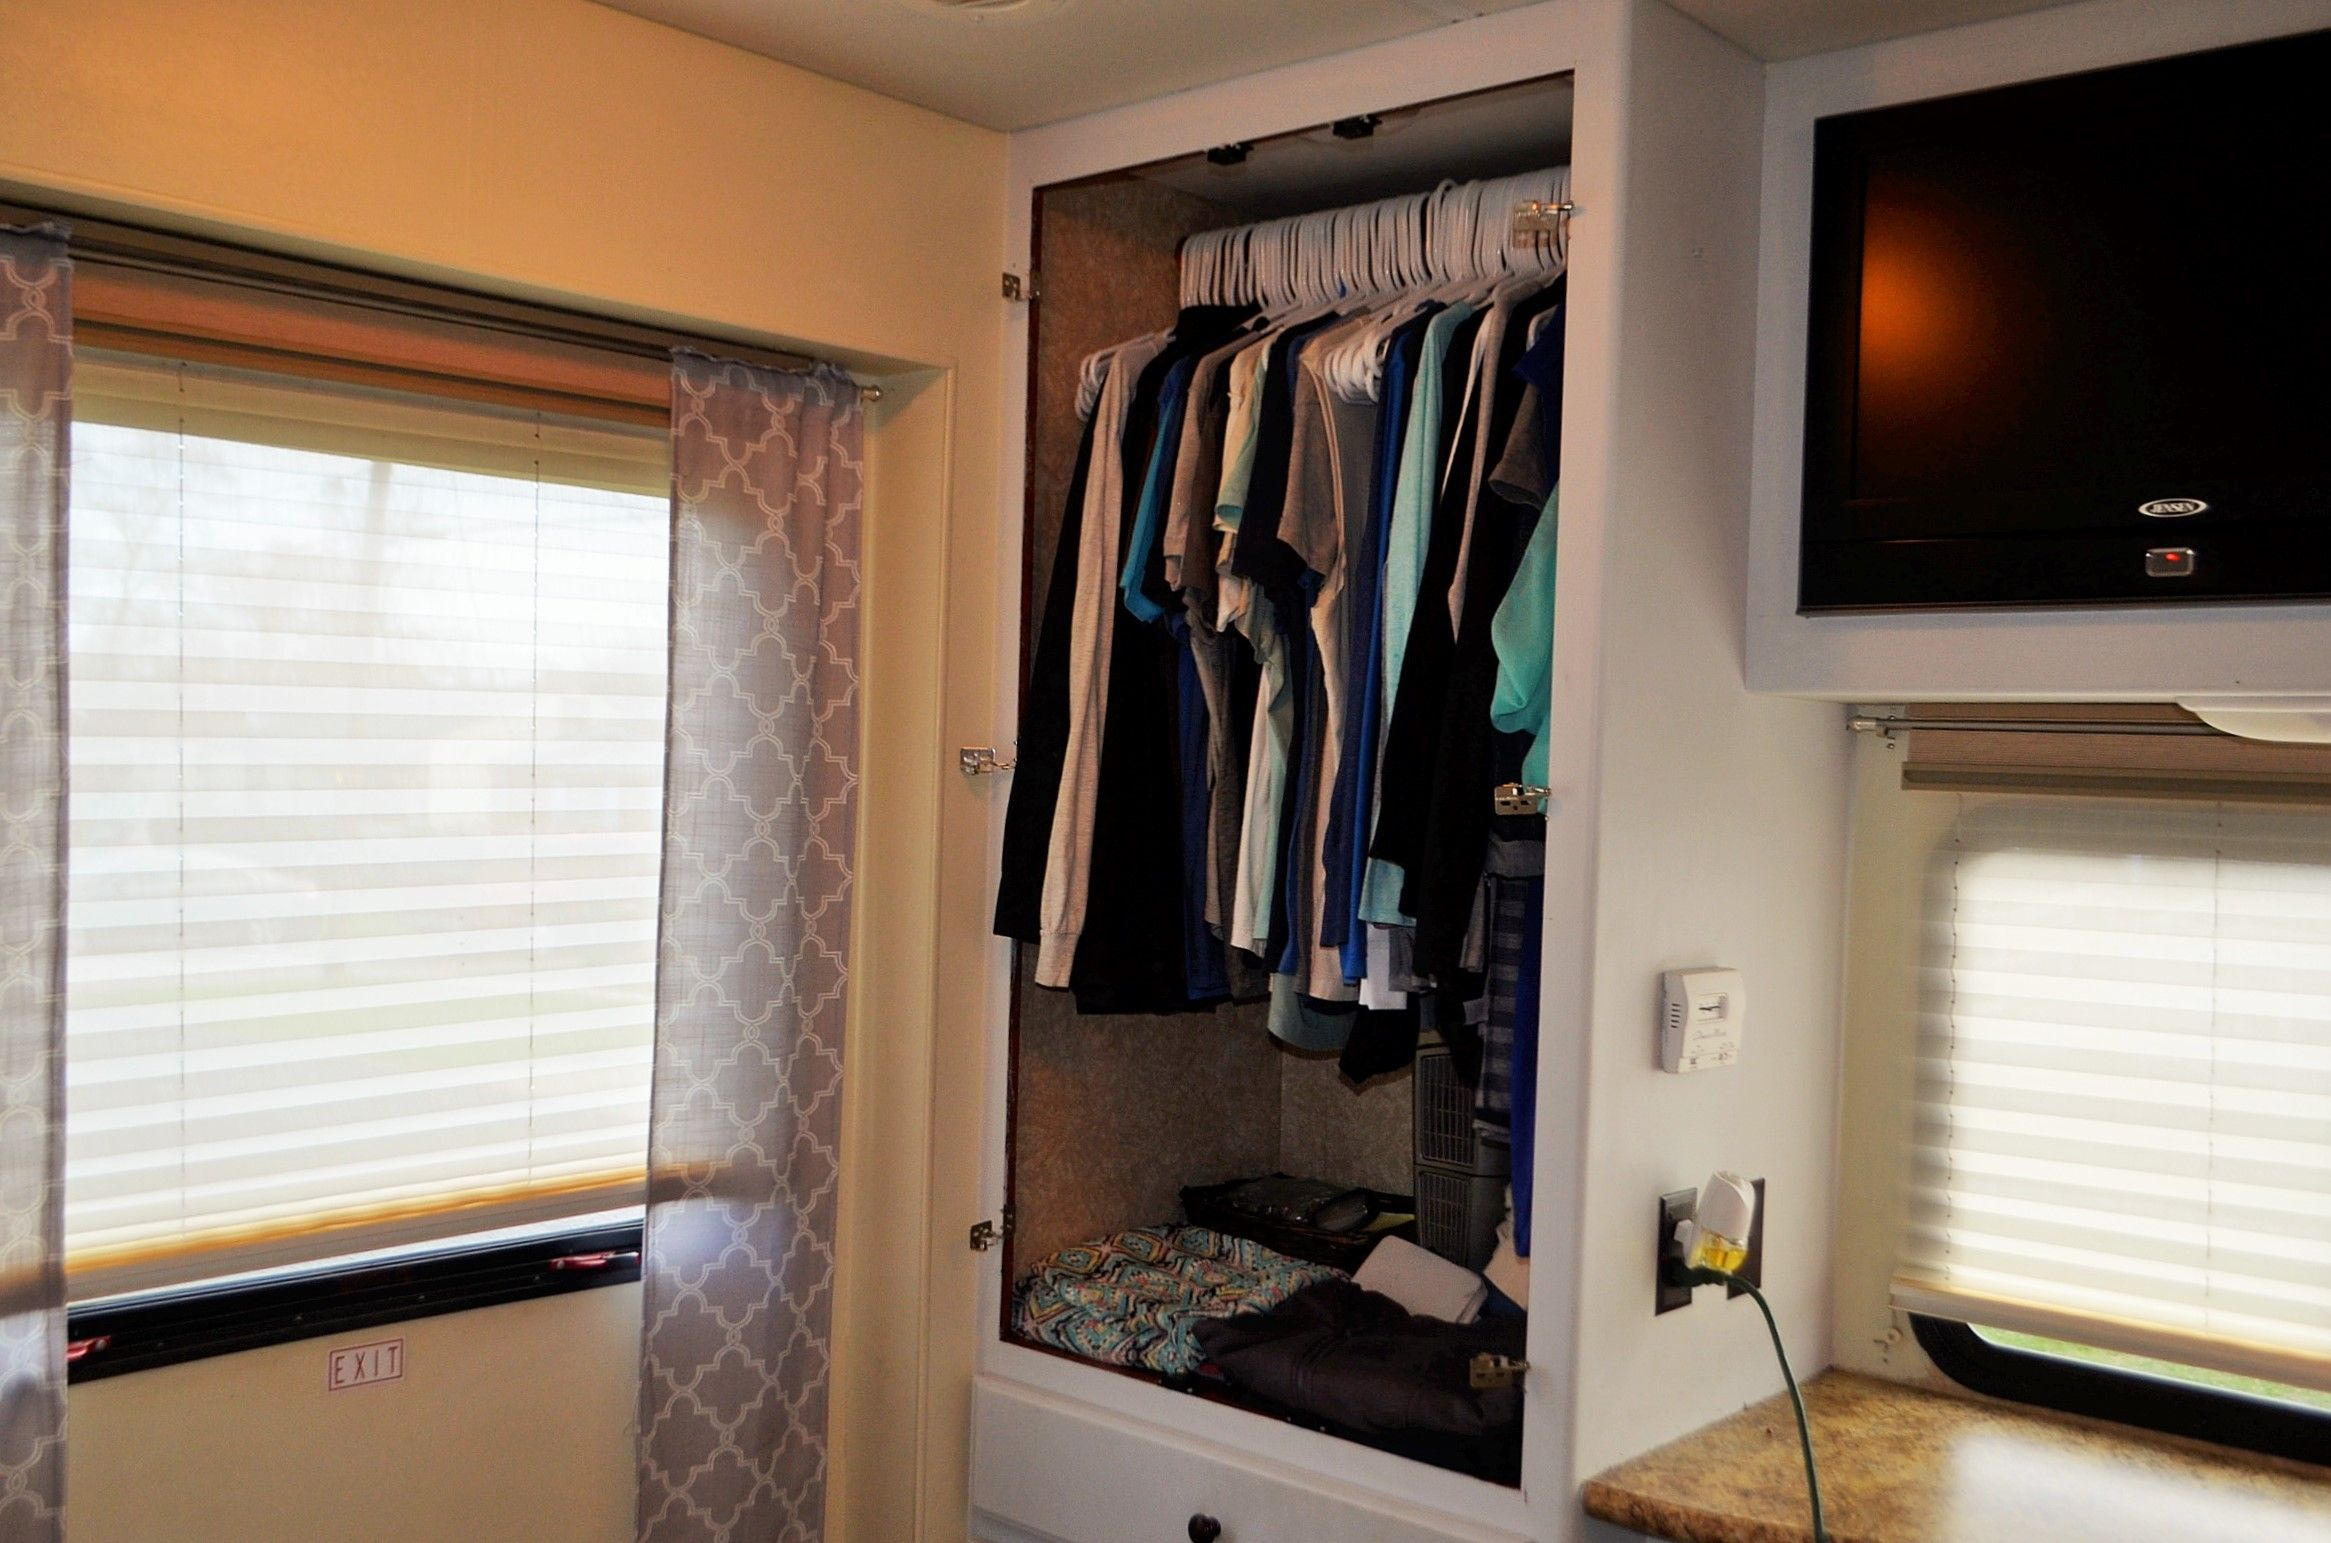 Rv Closet Doors Makeover With Images Tiny House Closet Door Makeover Closet Redo